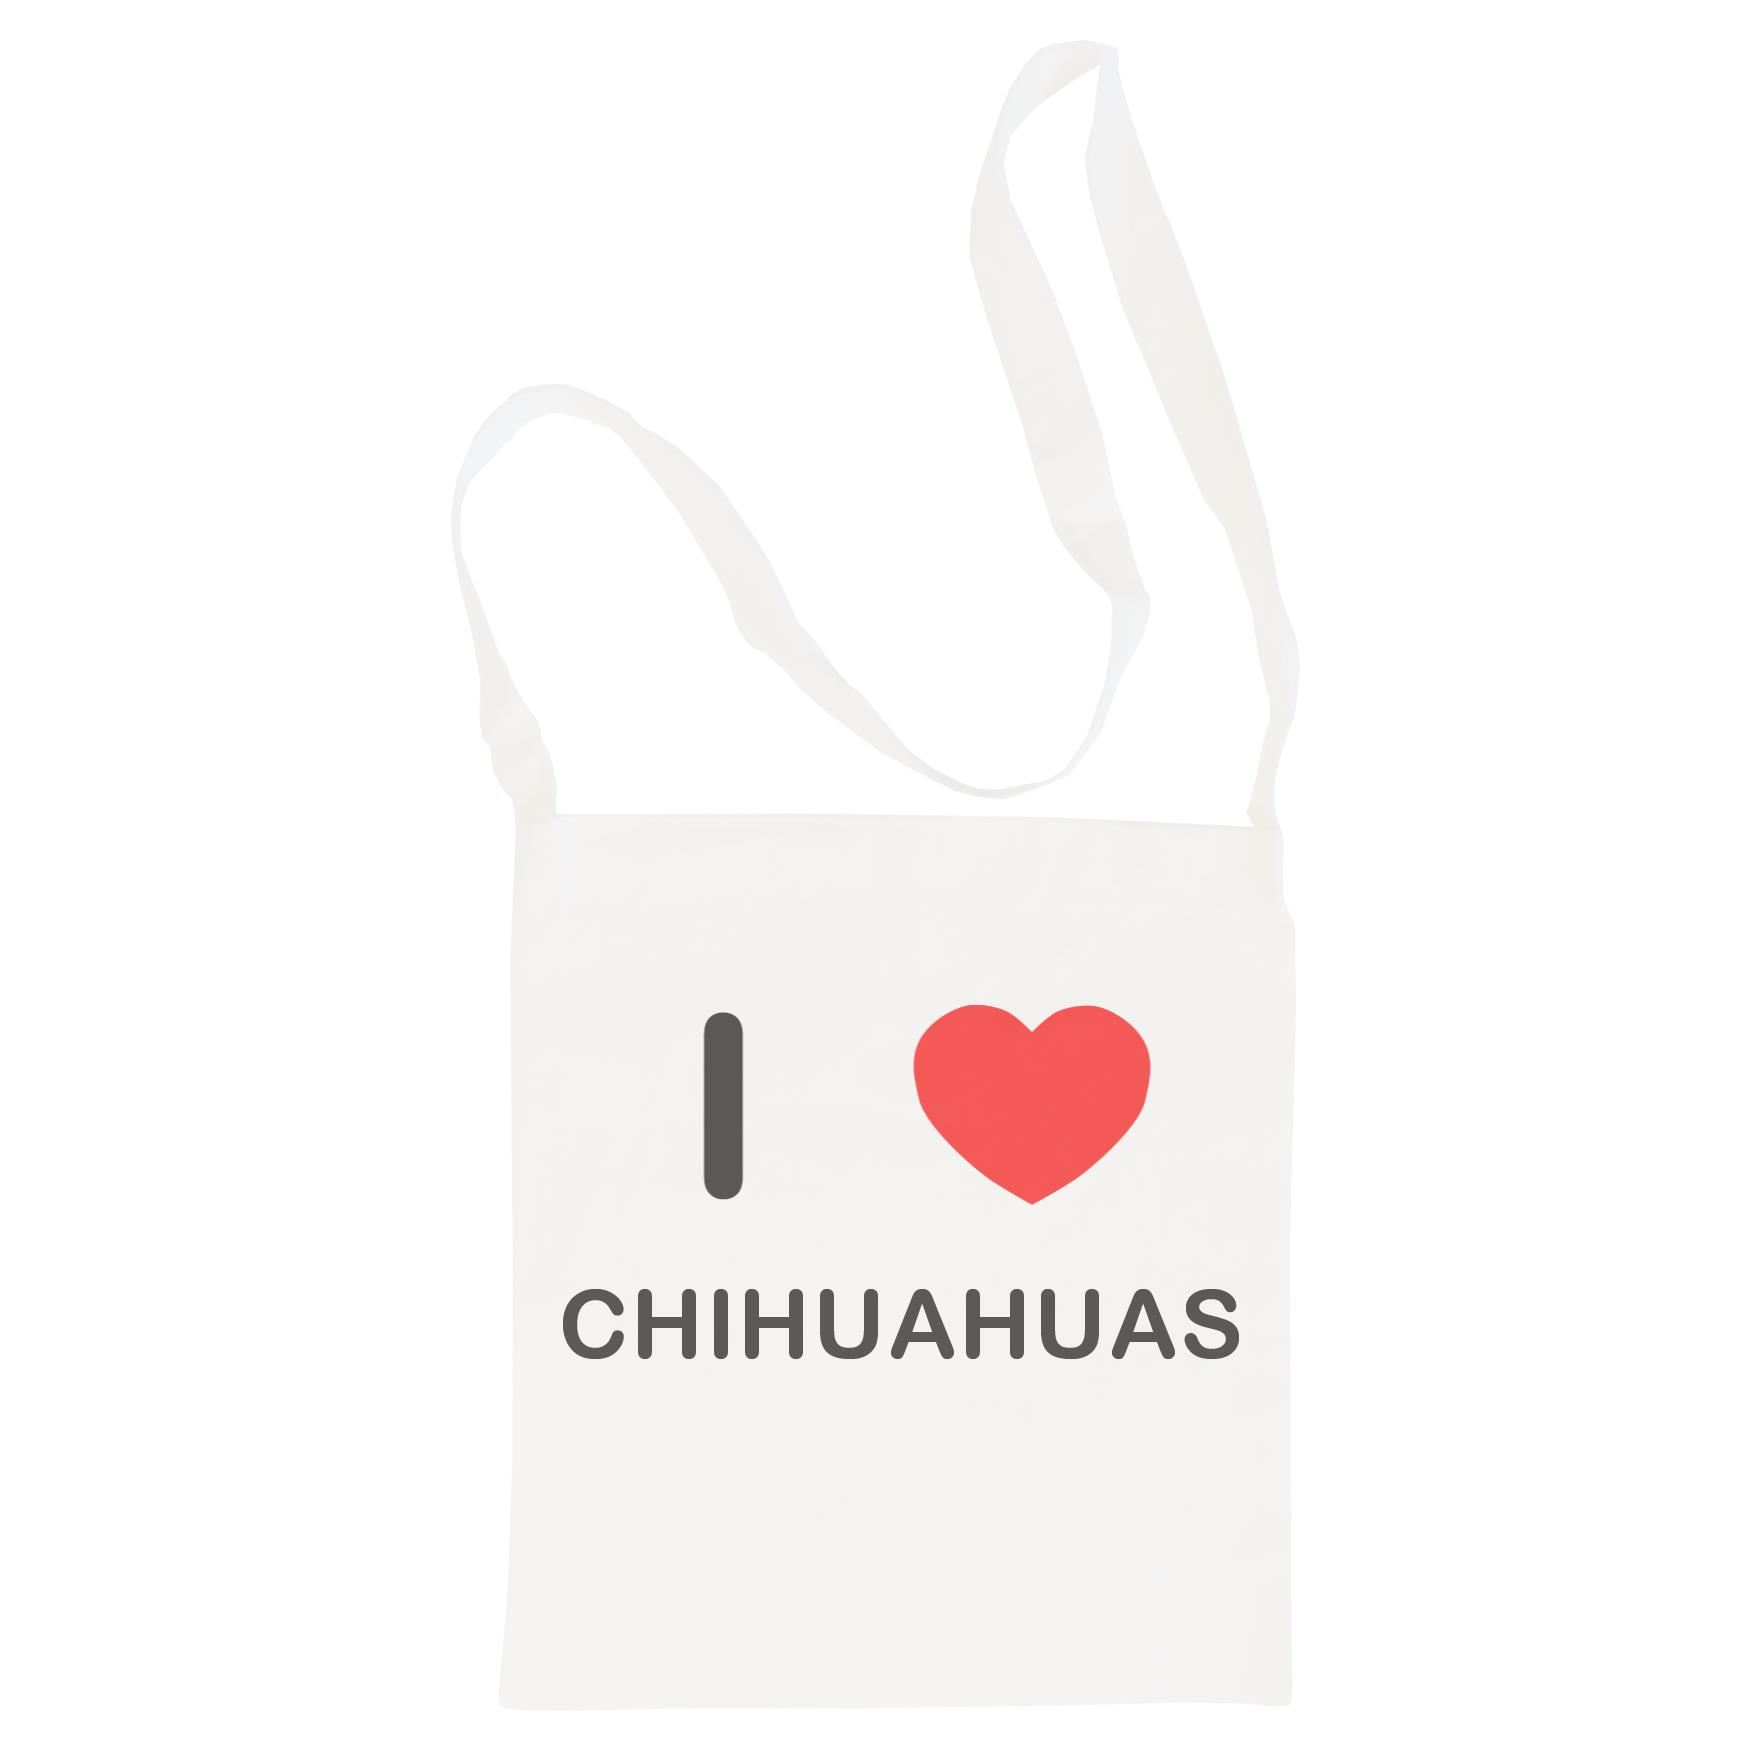 I Love Chihuahuas - Cotton Bag | Size choice Tote, Shopper or Sling